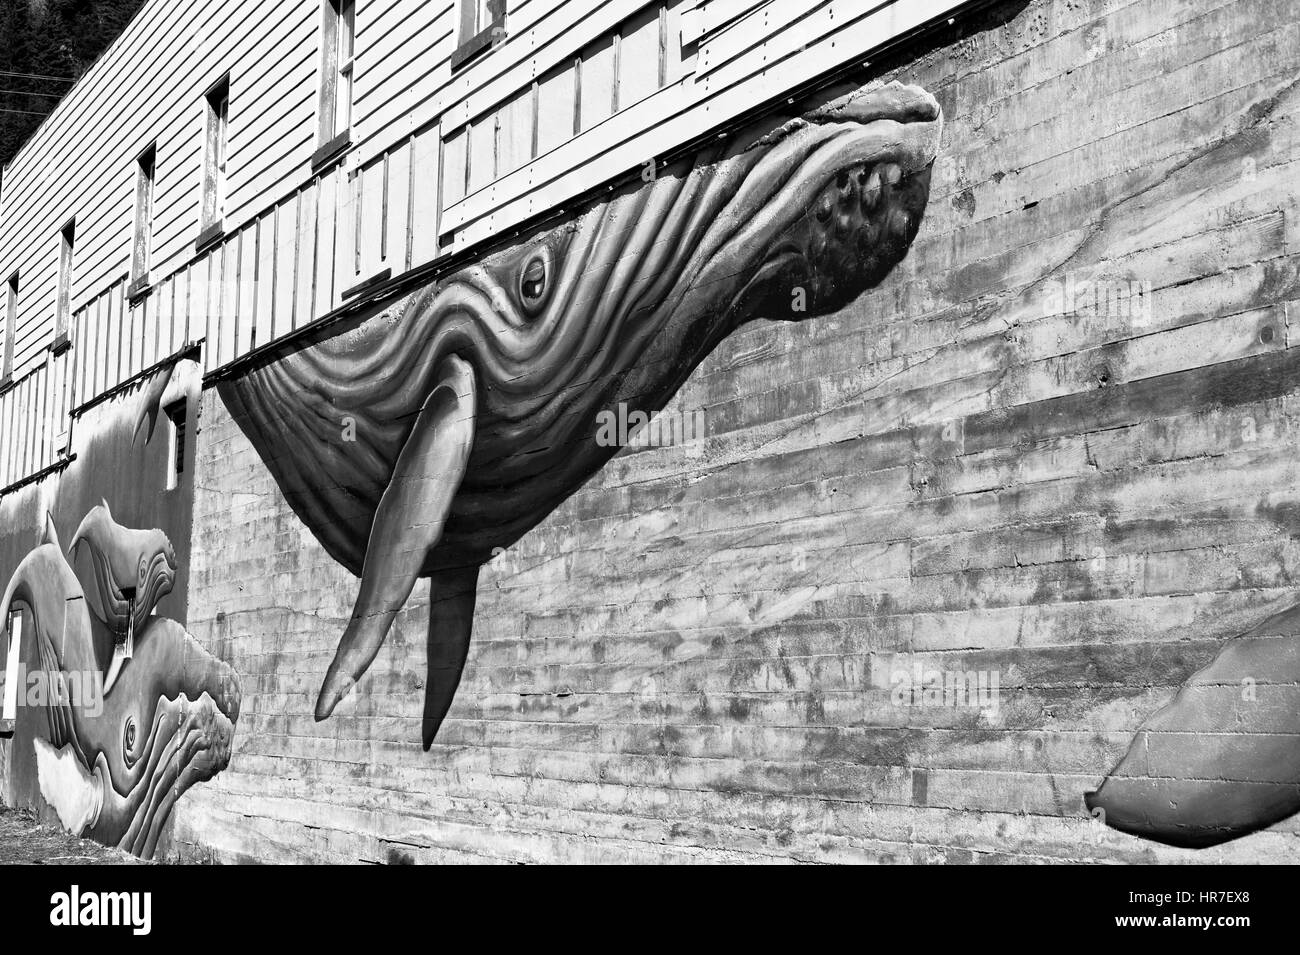 An enormous mural of whales adorns the side of a building near the sea life center in Seward Alaska. - Stock Image